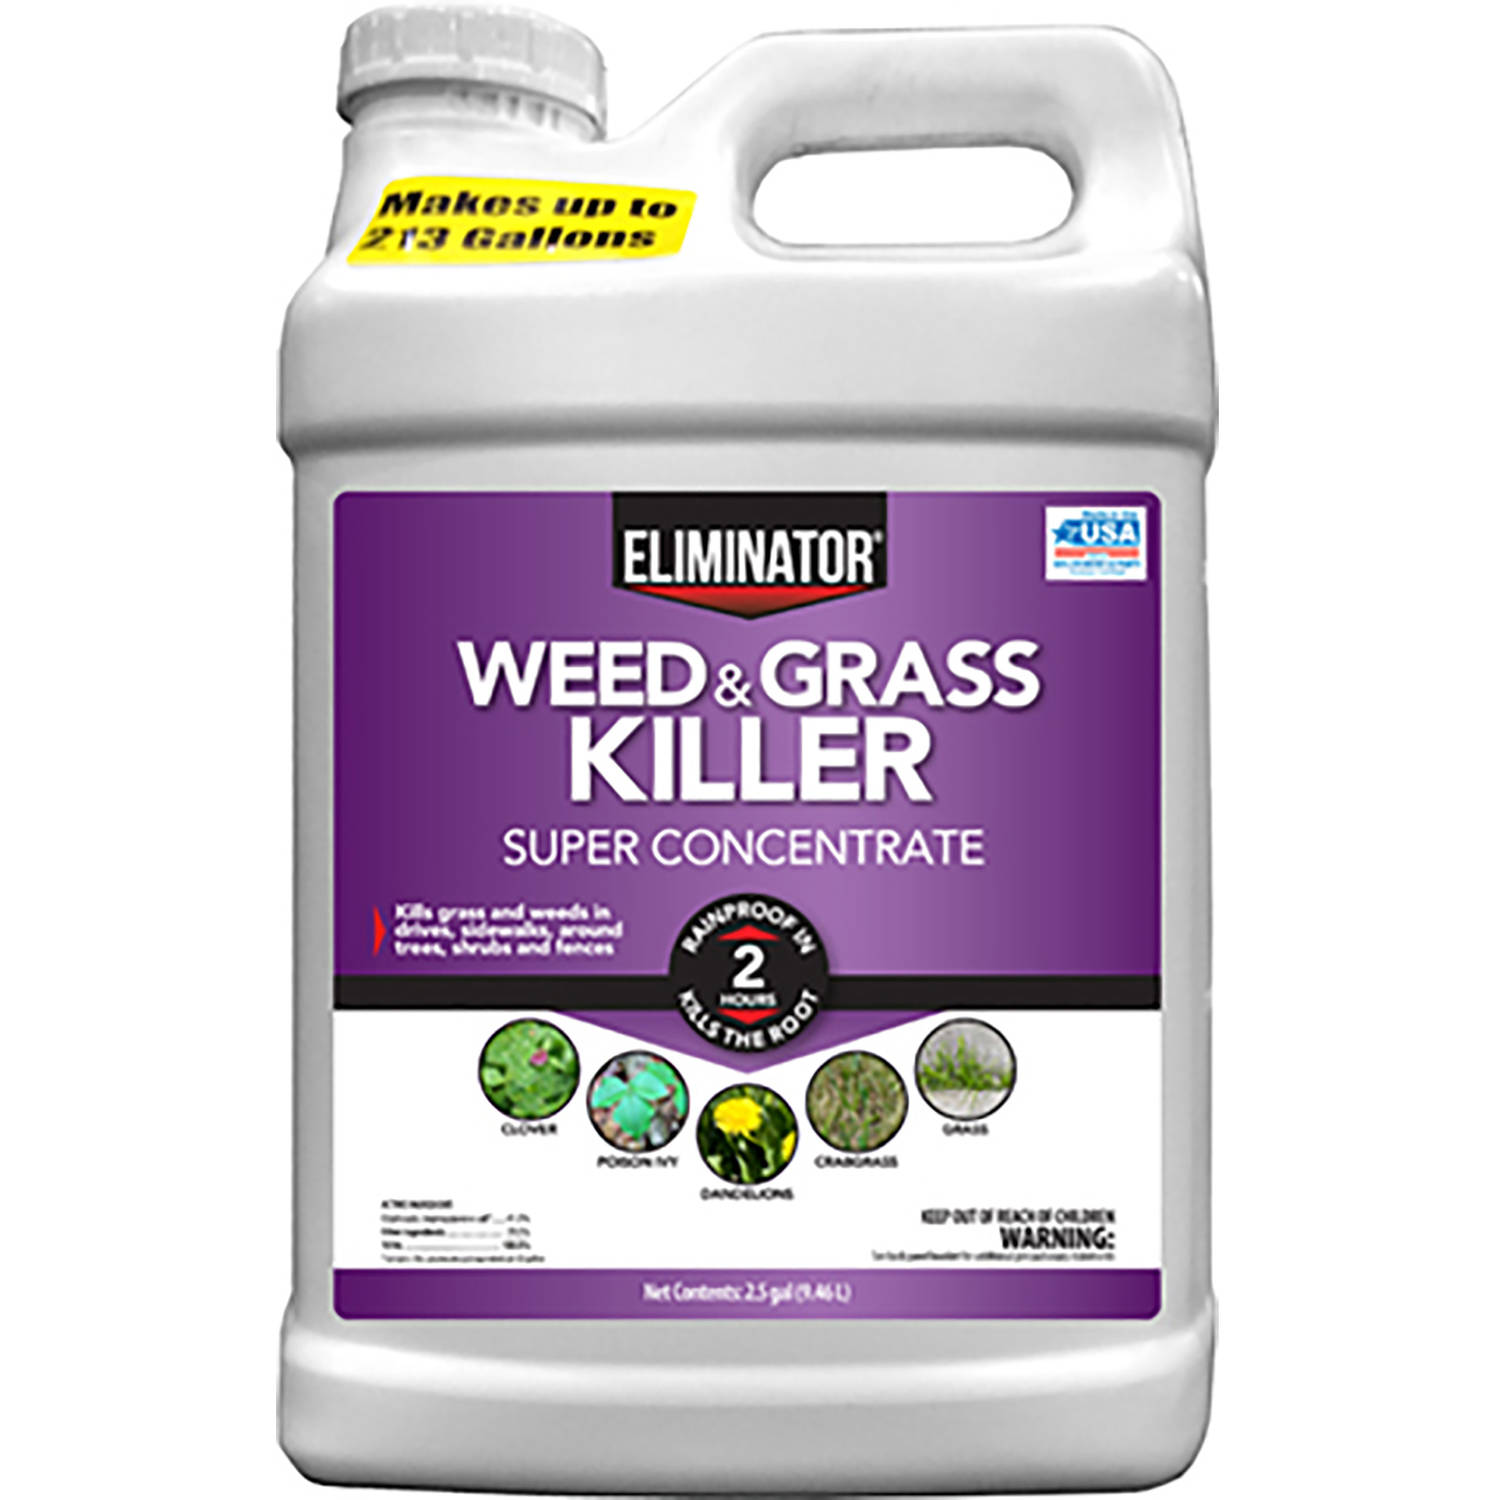 Eliminator Weed and Grass Killer Super Concentrate, 2.5 Gallons